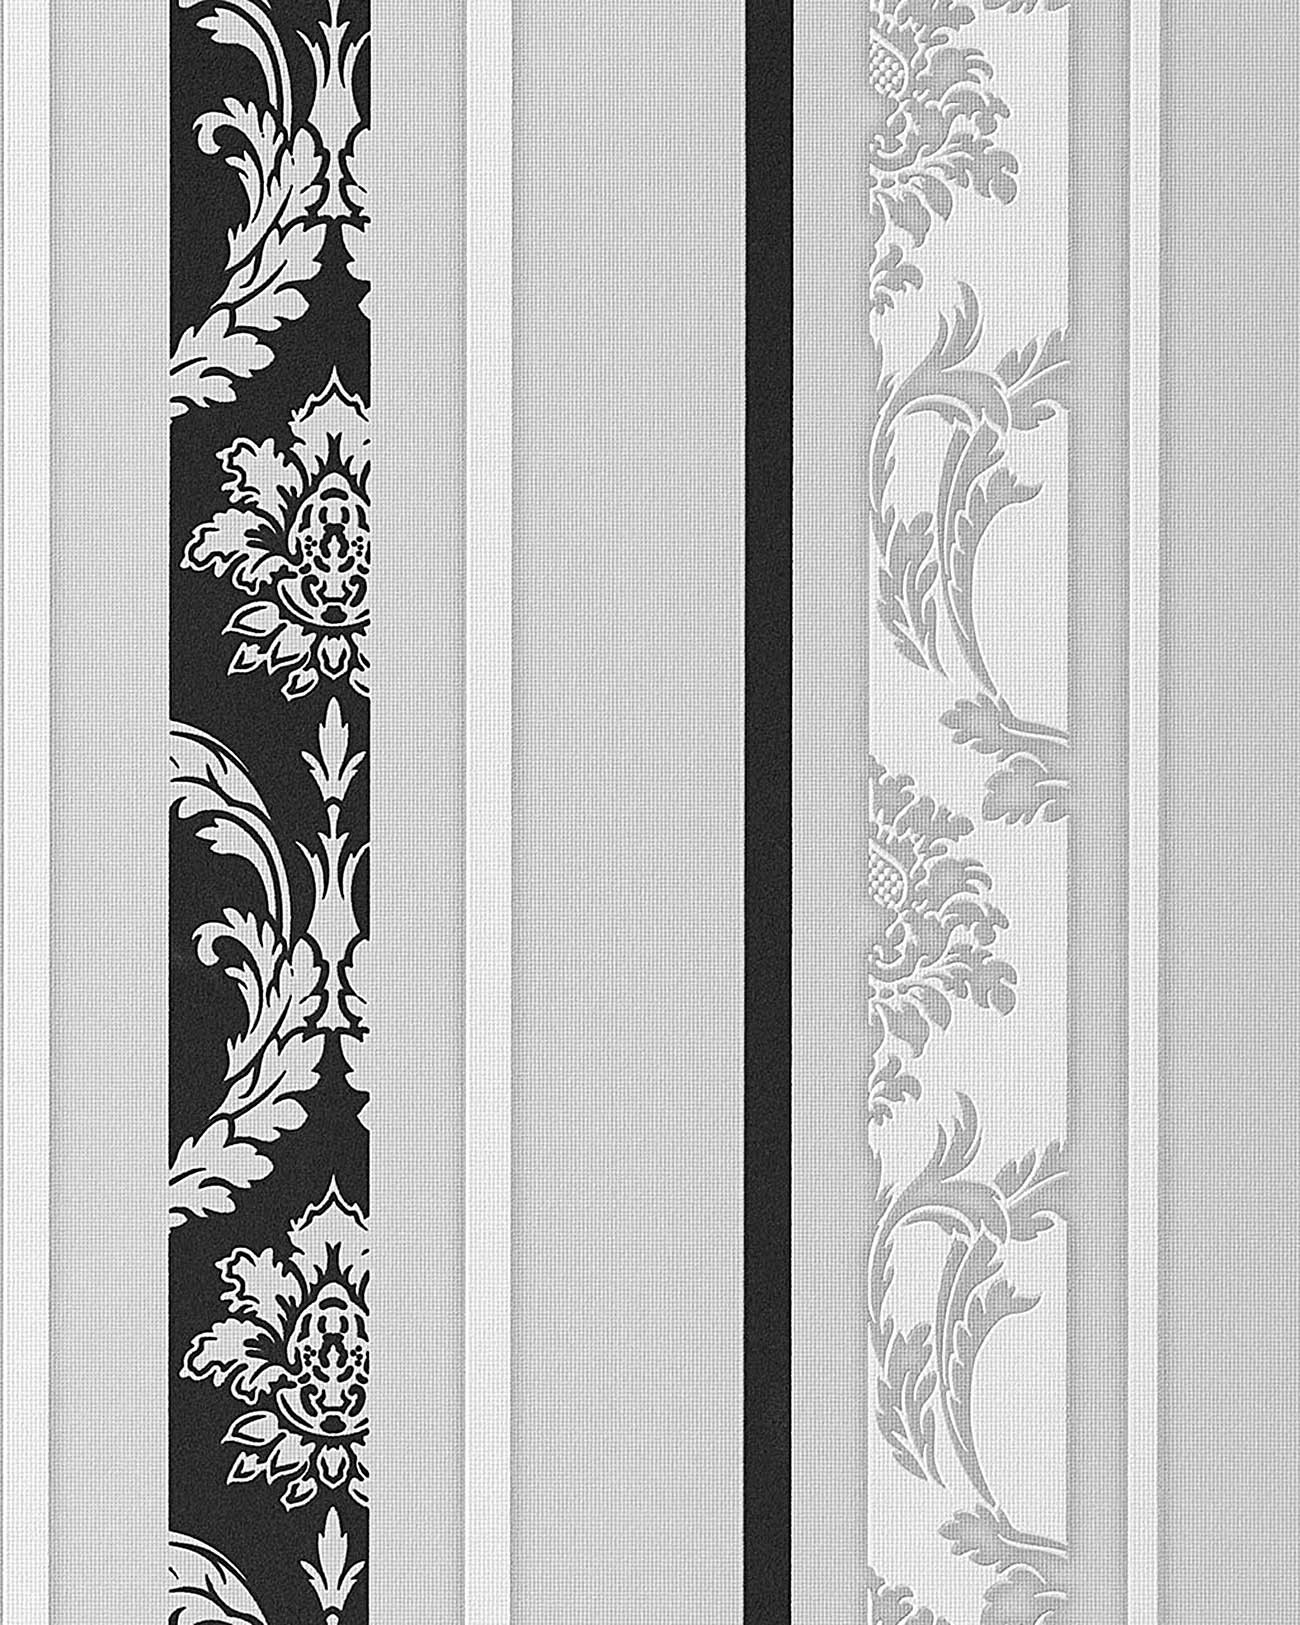 Schwarz Wei? Grau Tapete : Black and White Textured Wallpaper